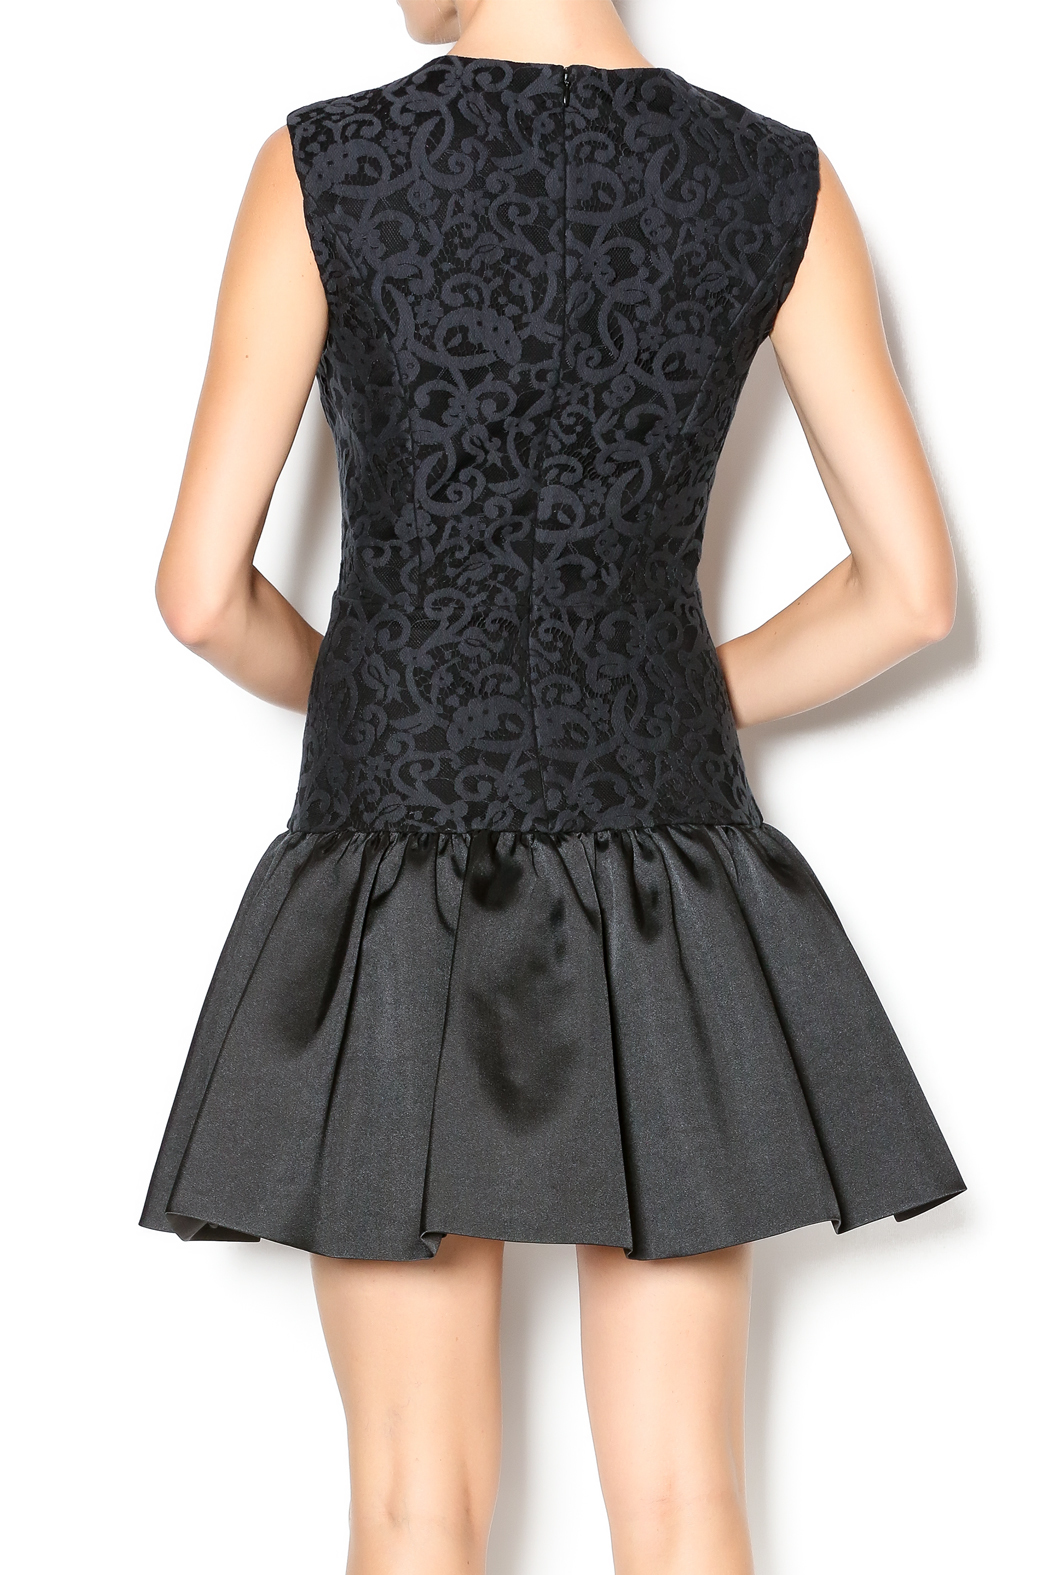 Erin Fetherston Holly Dress - Back Cropped Image